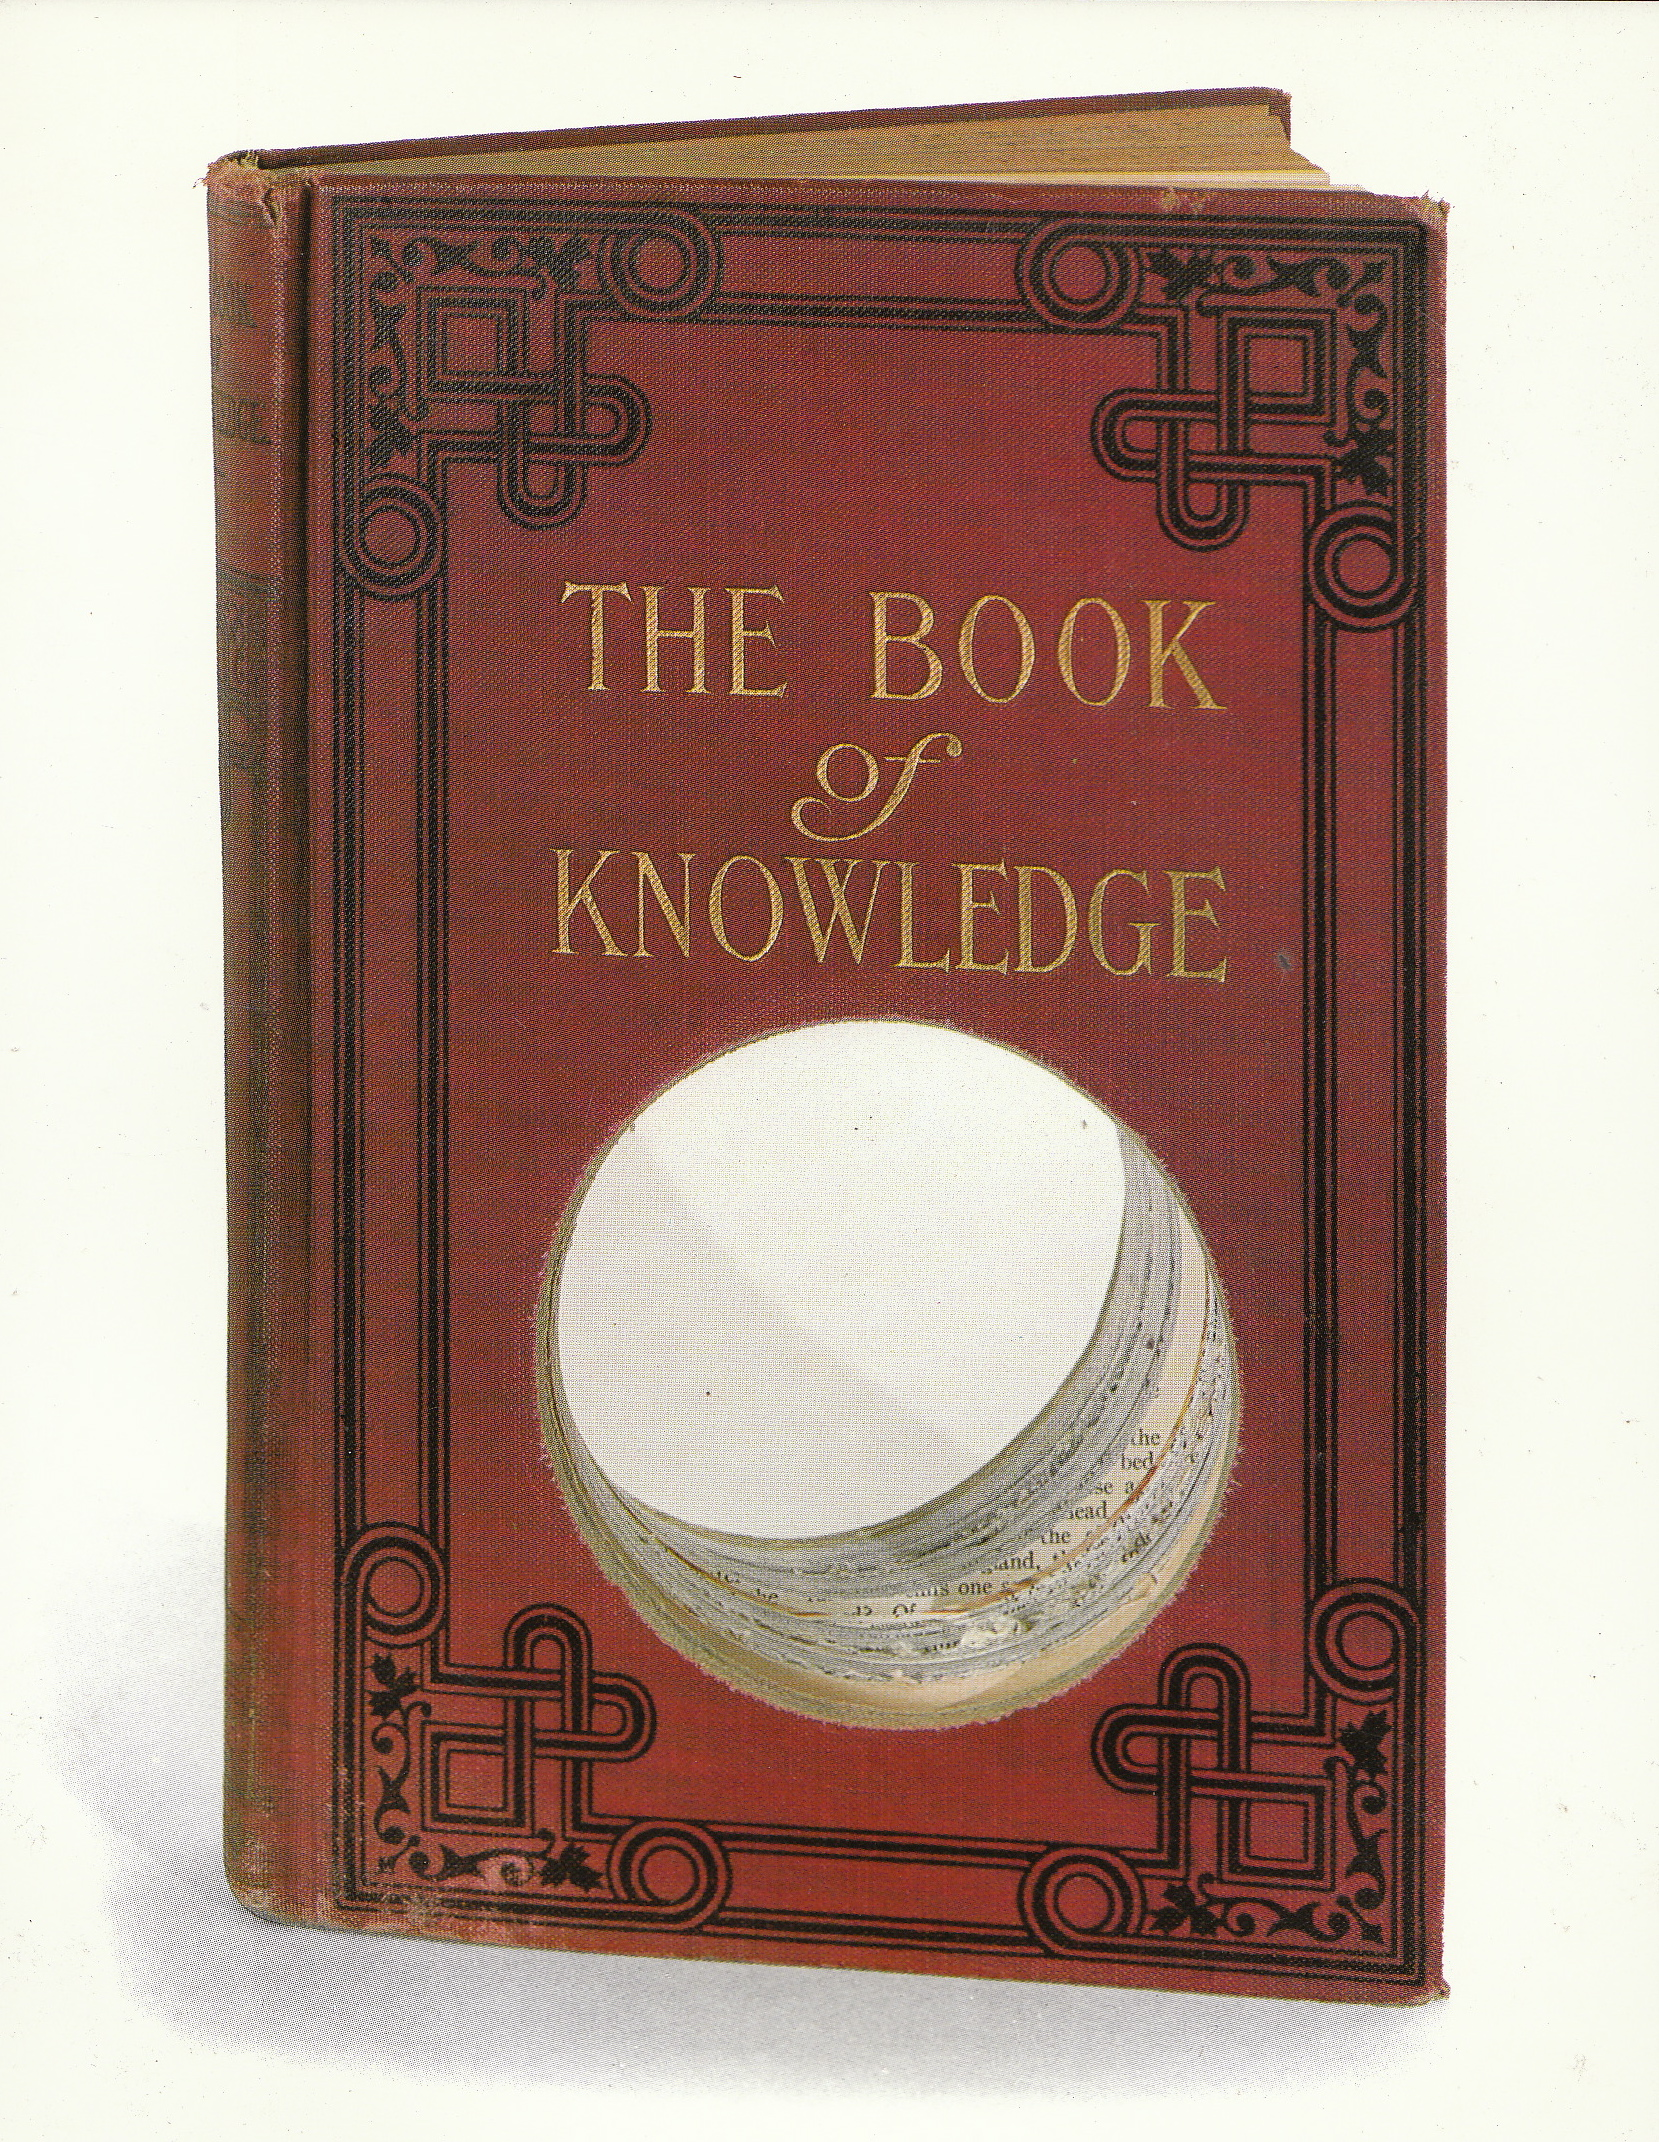 File:The Book of Knowledge (Lipski sculpture).jpg